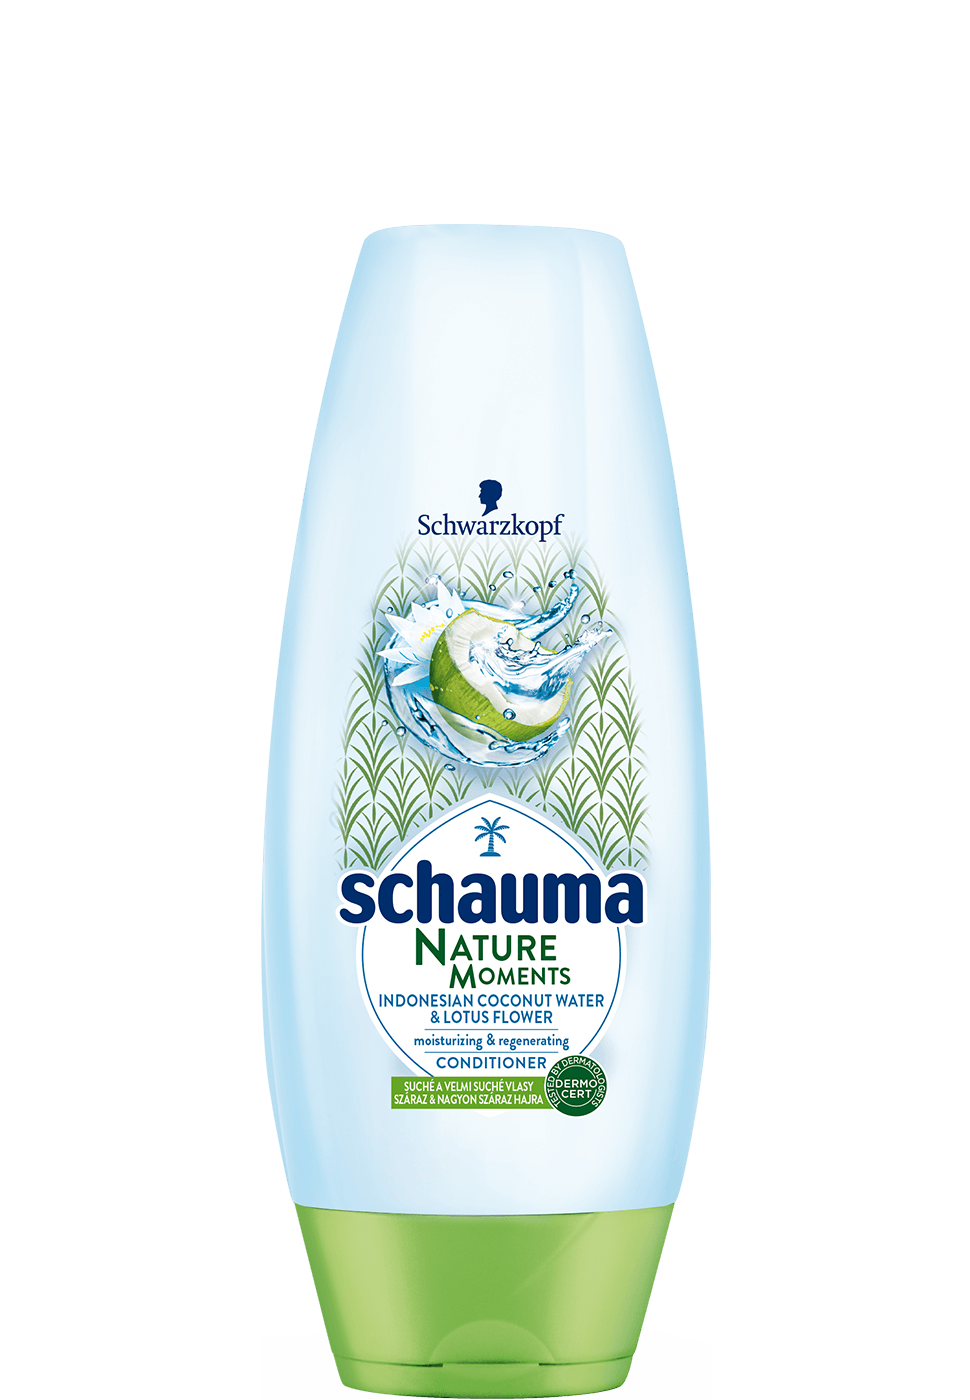 schauma_com_nature_moments_indonesian_coconut_water_conditioner_970x1400